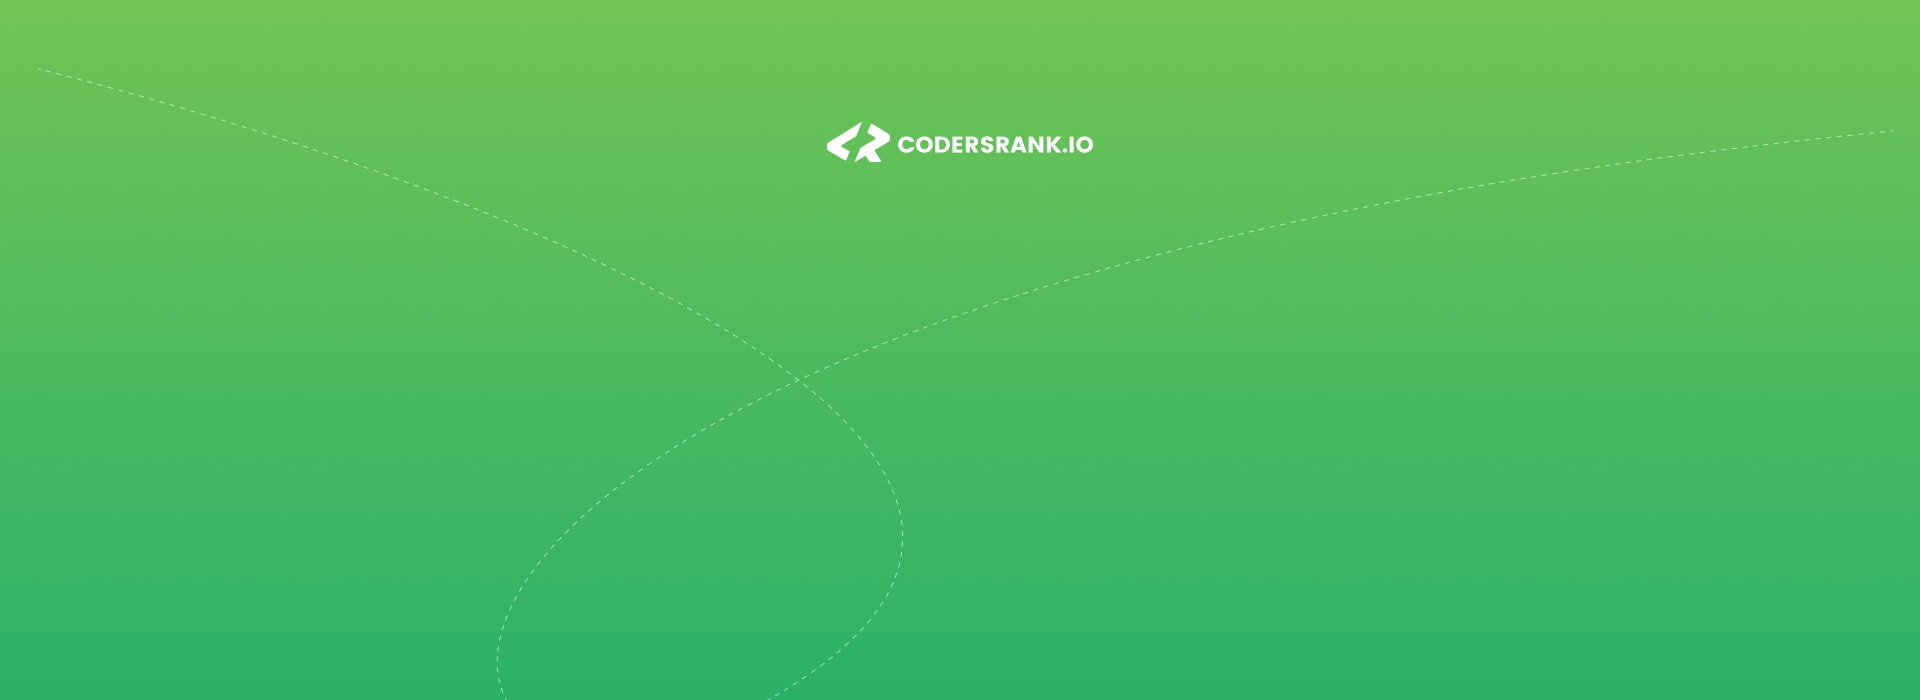 codersrank-case-study